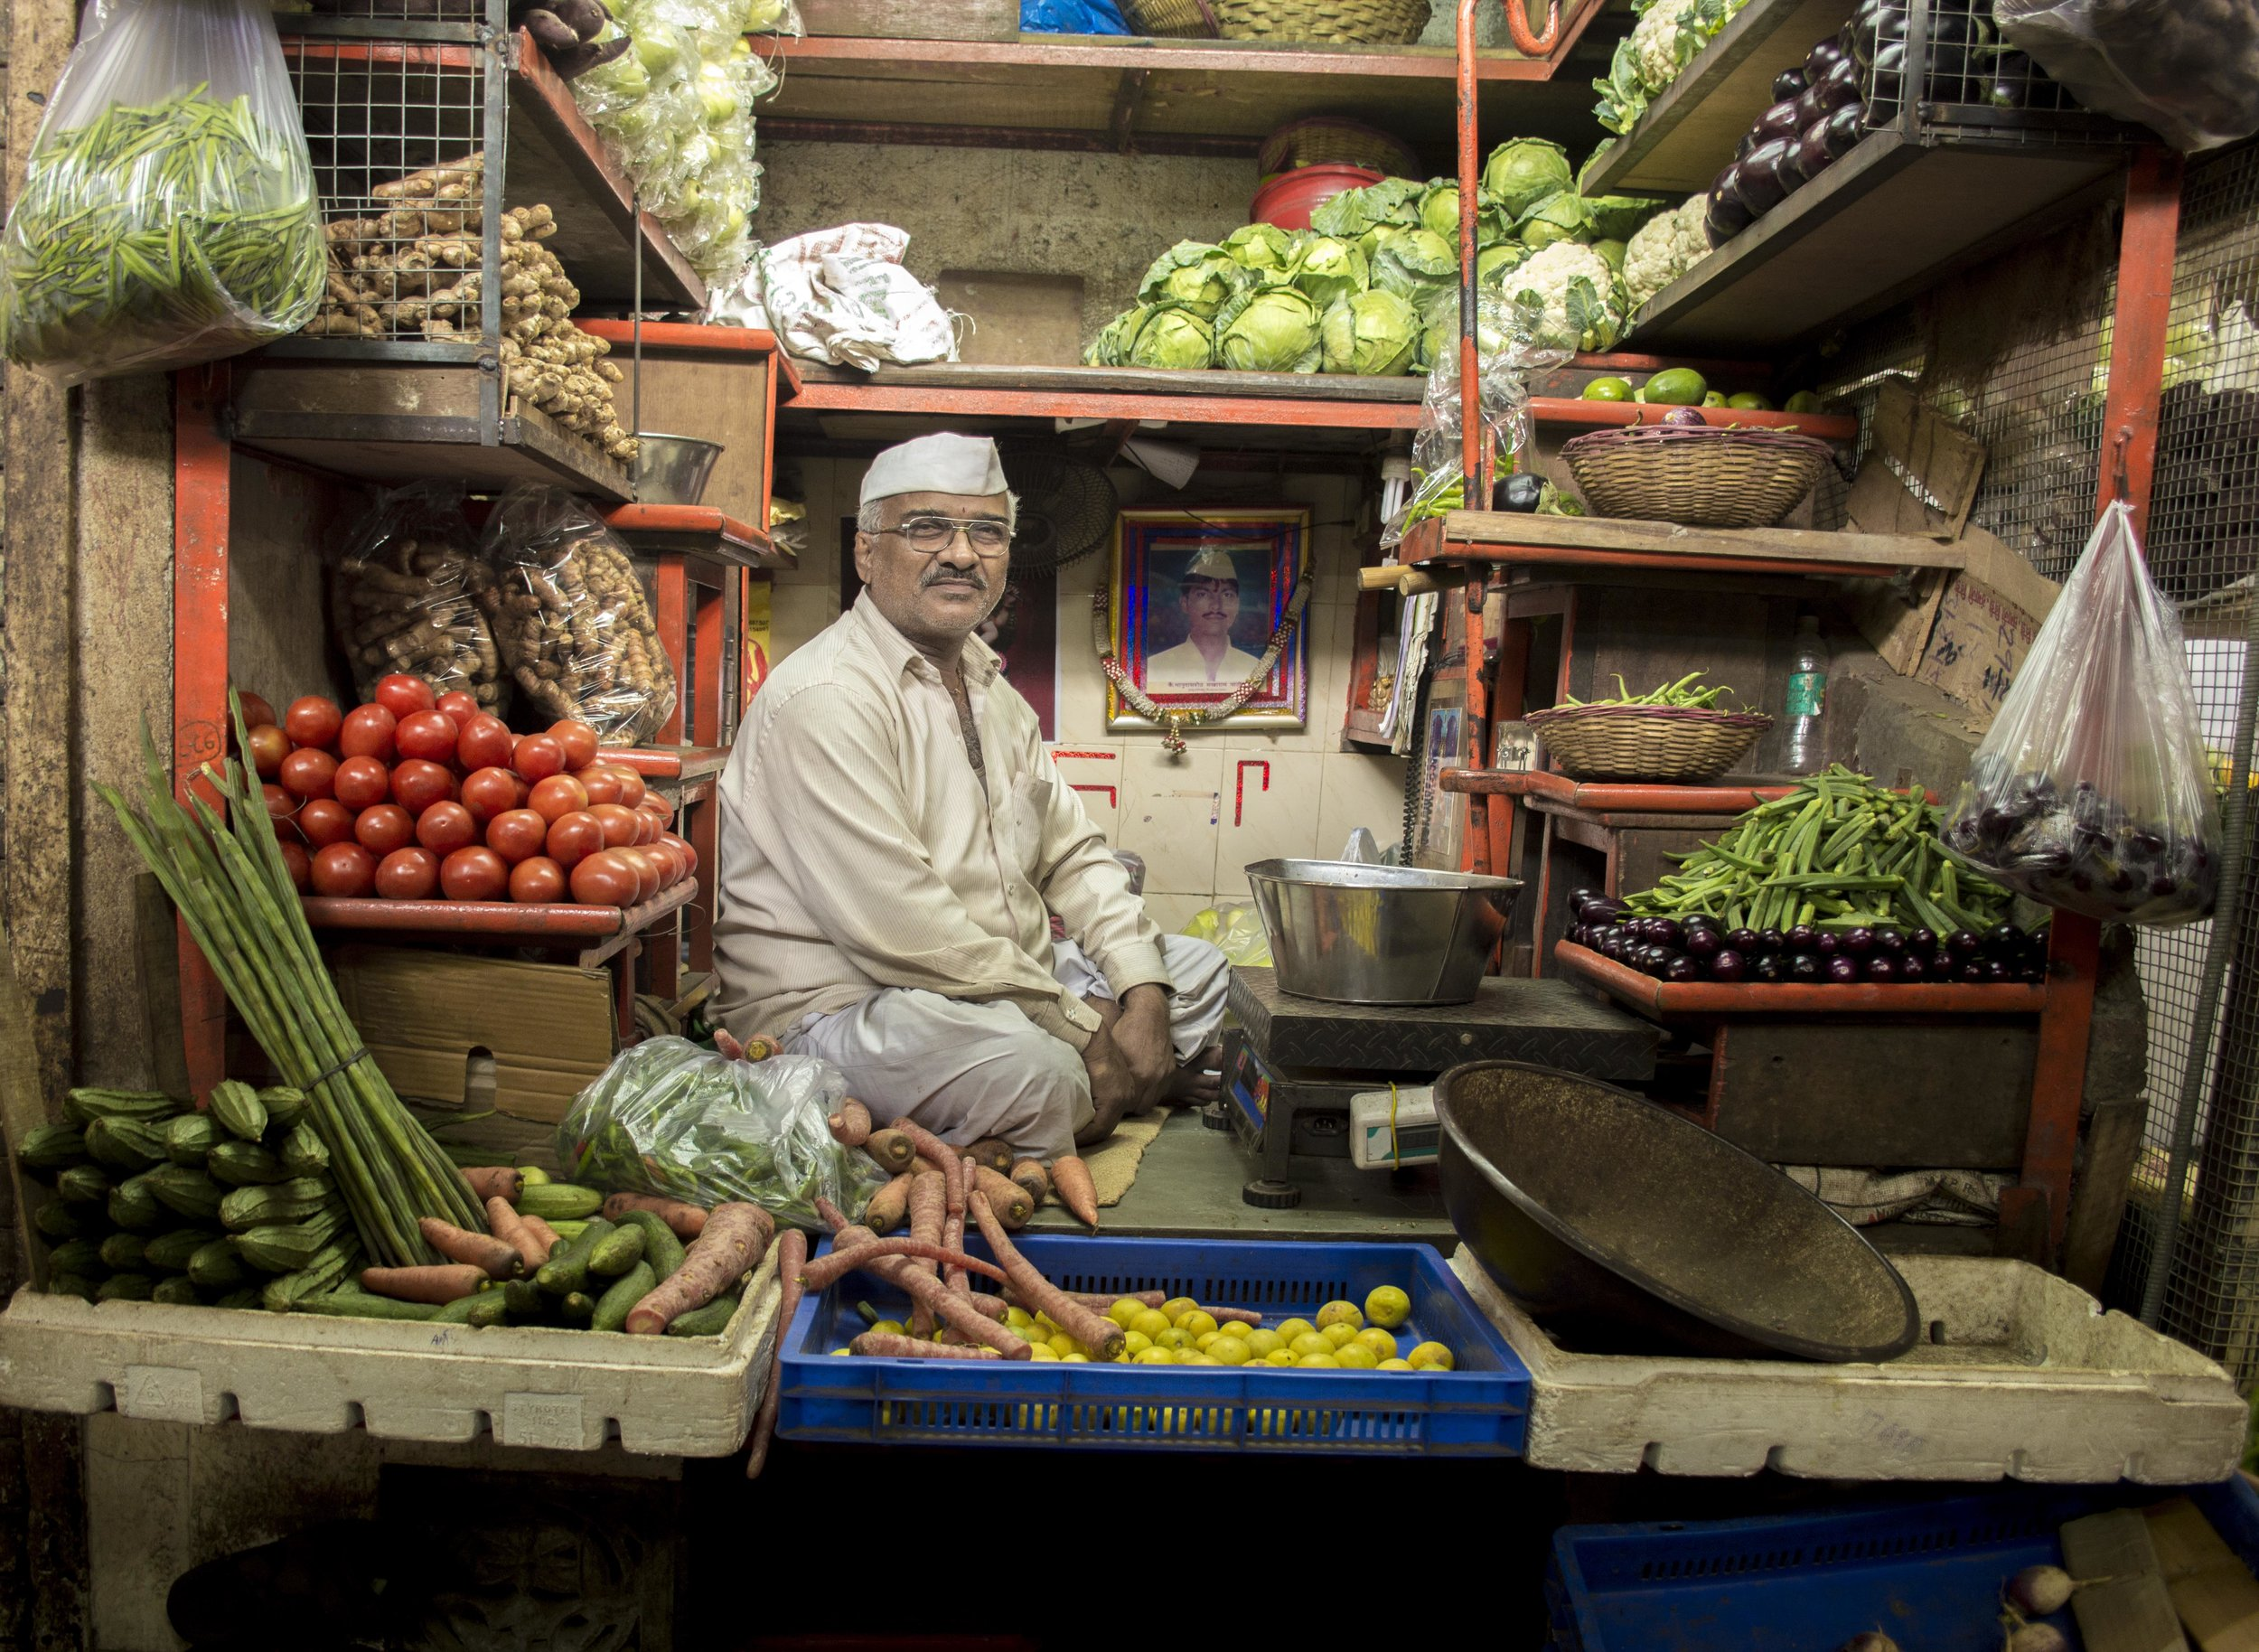 Proud produce shopkeeper in Mumbai's Crawford Market